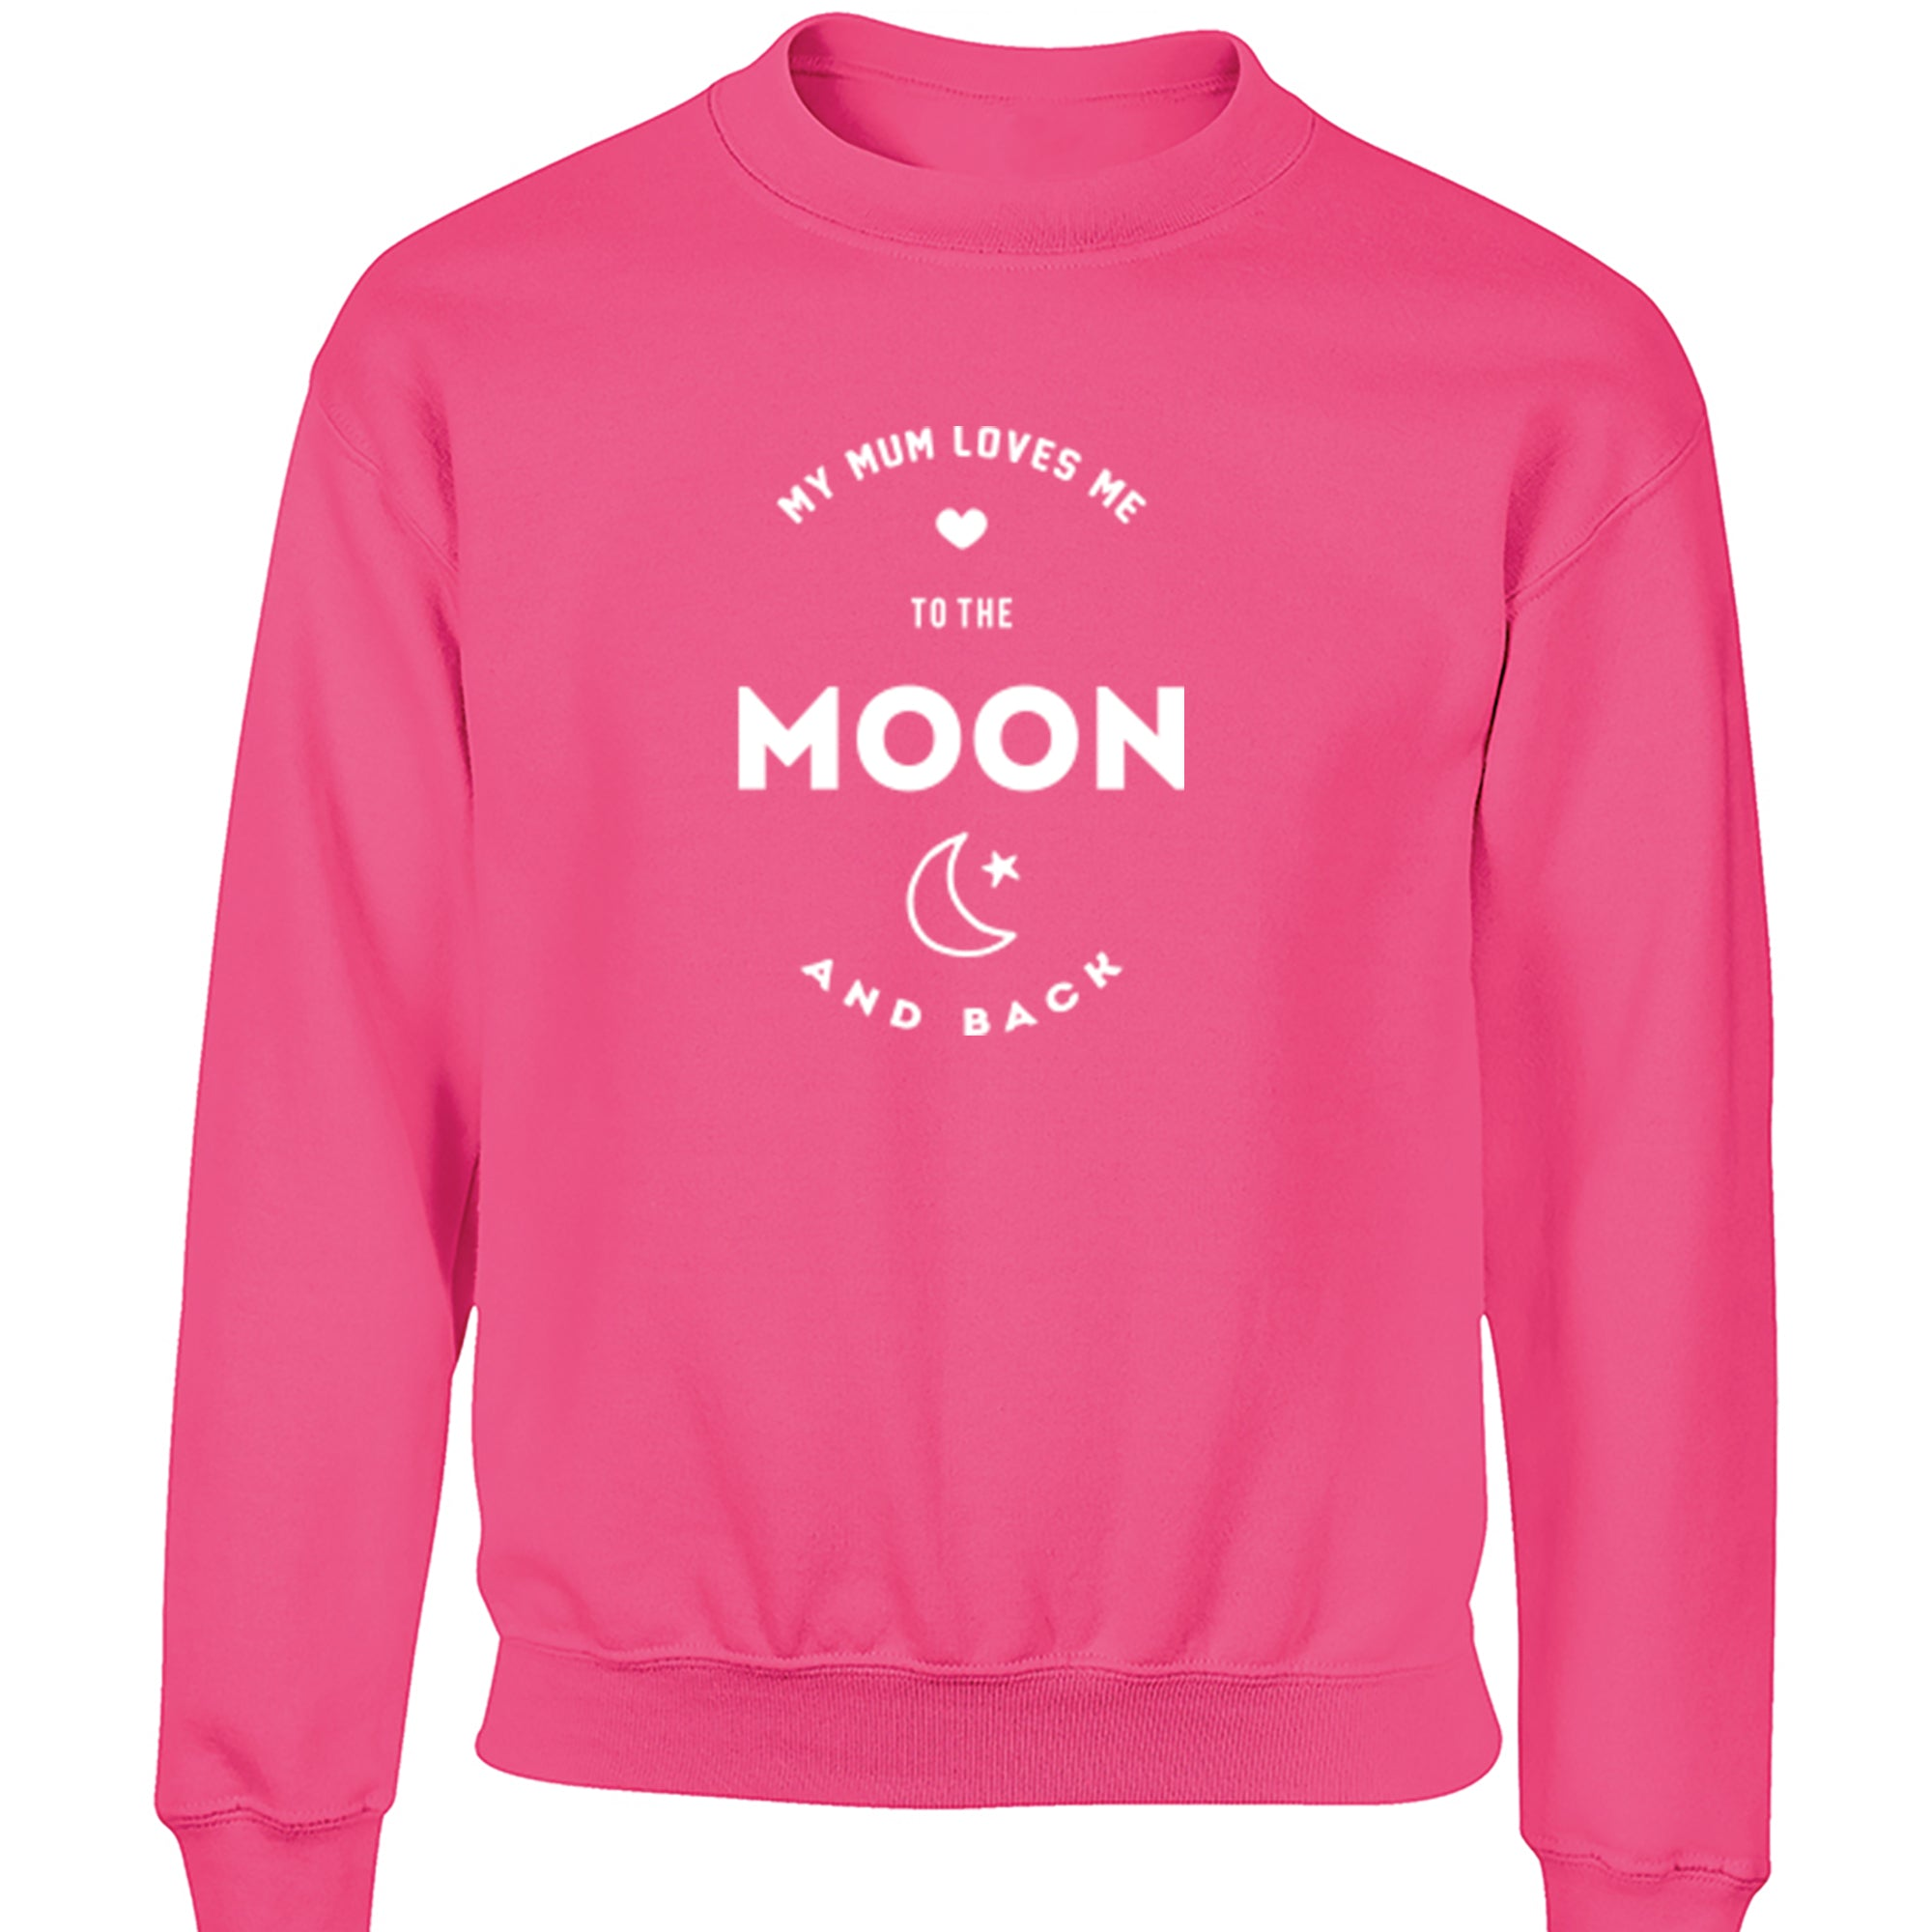 My Mum Loves Me To The Moon And Back Childrens Ages 3/4-12/14 Unisex Jumper K1539 - Illustrated Identity Ltd.